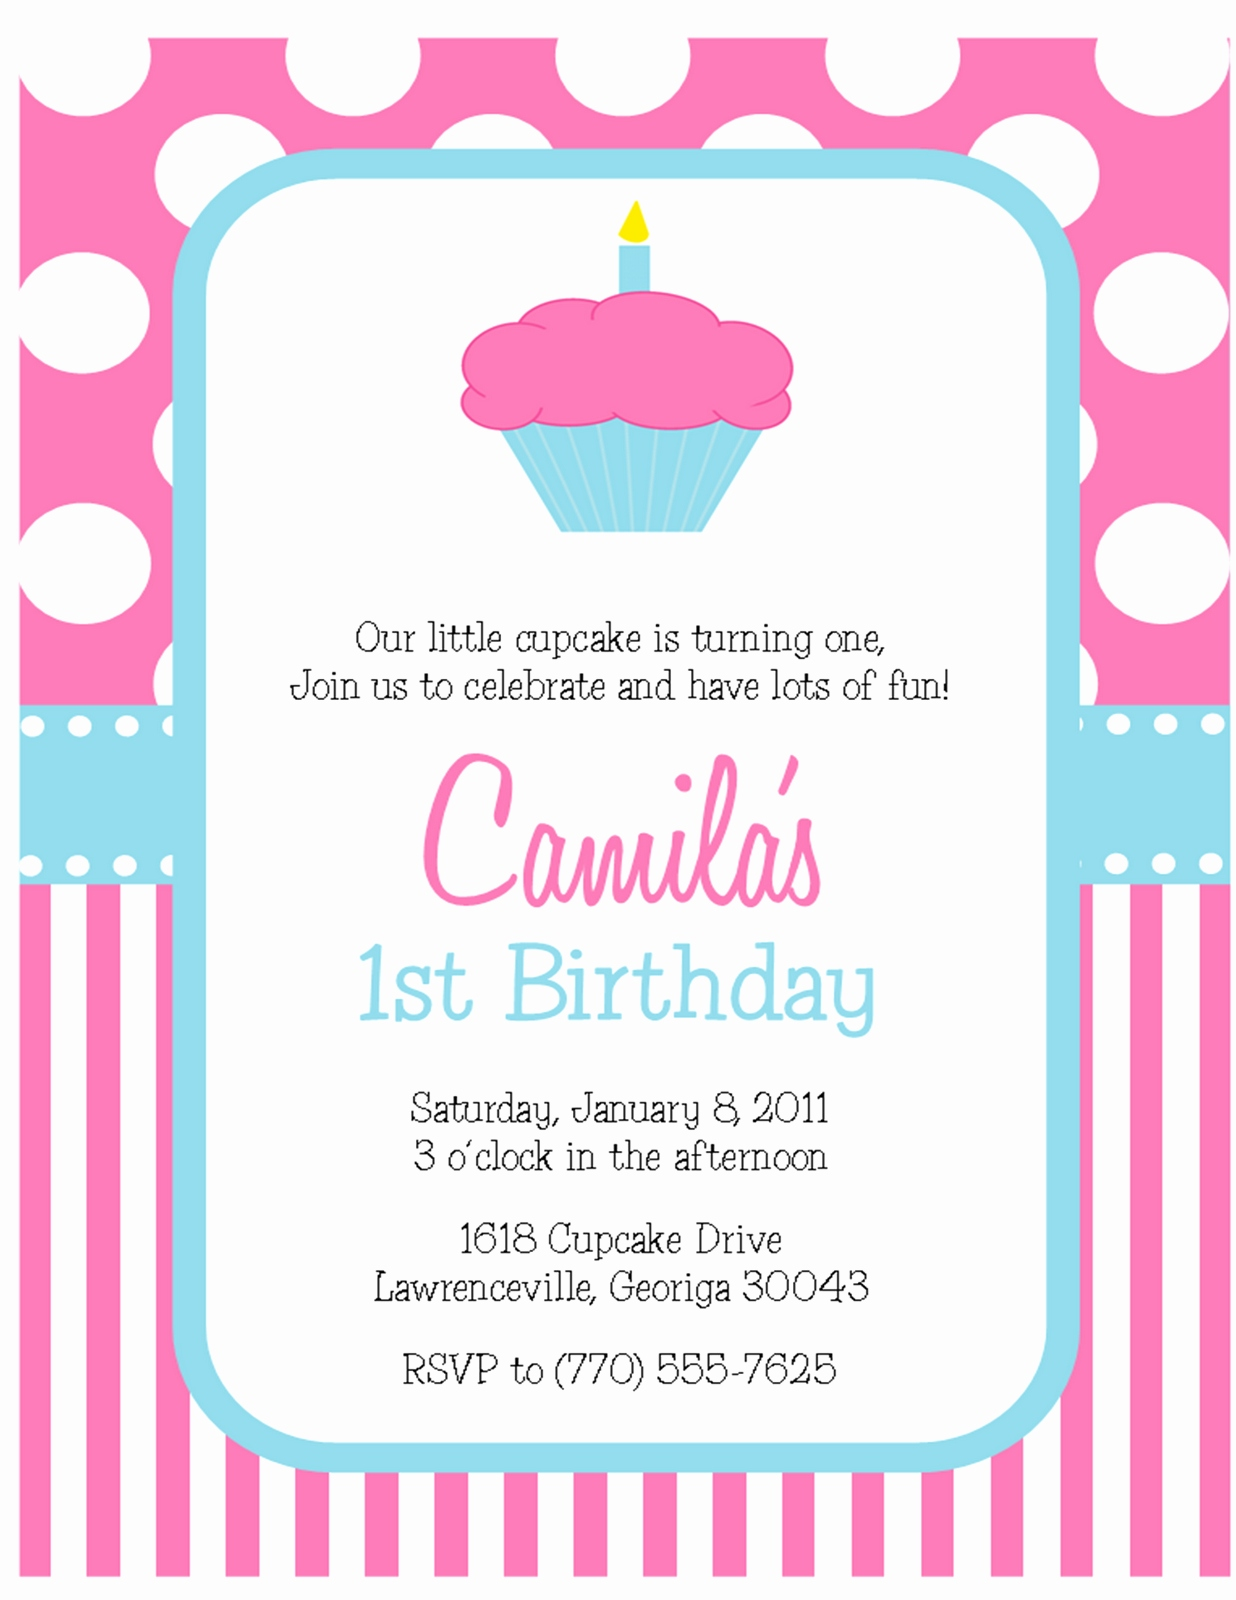 cupcake photo birthday invitations ; birthday-invitation-card-png-best-of-cupcake-birthday-invitations-cupcake-birthday-invitations-with-of-birthday-invitation-card-png